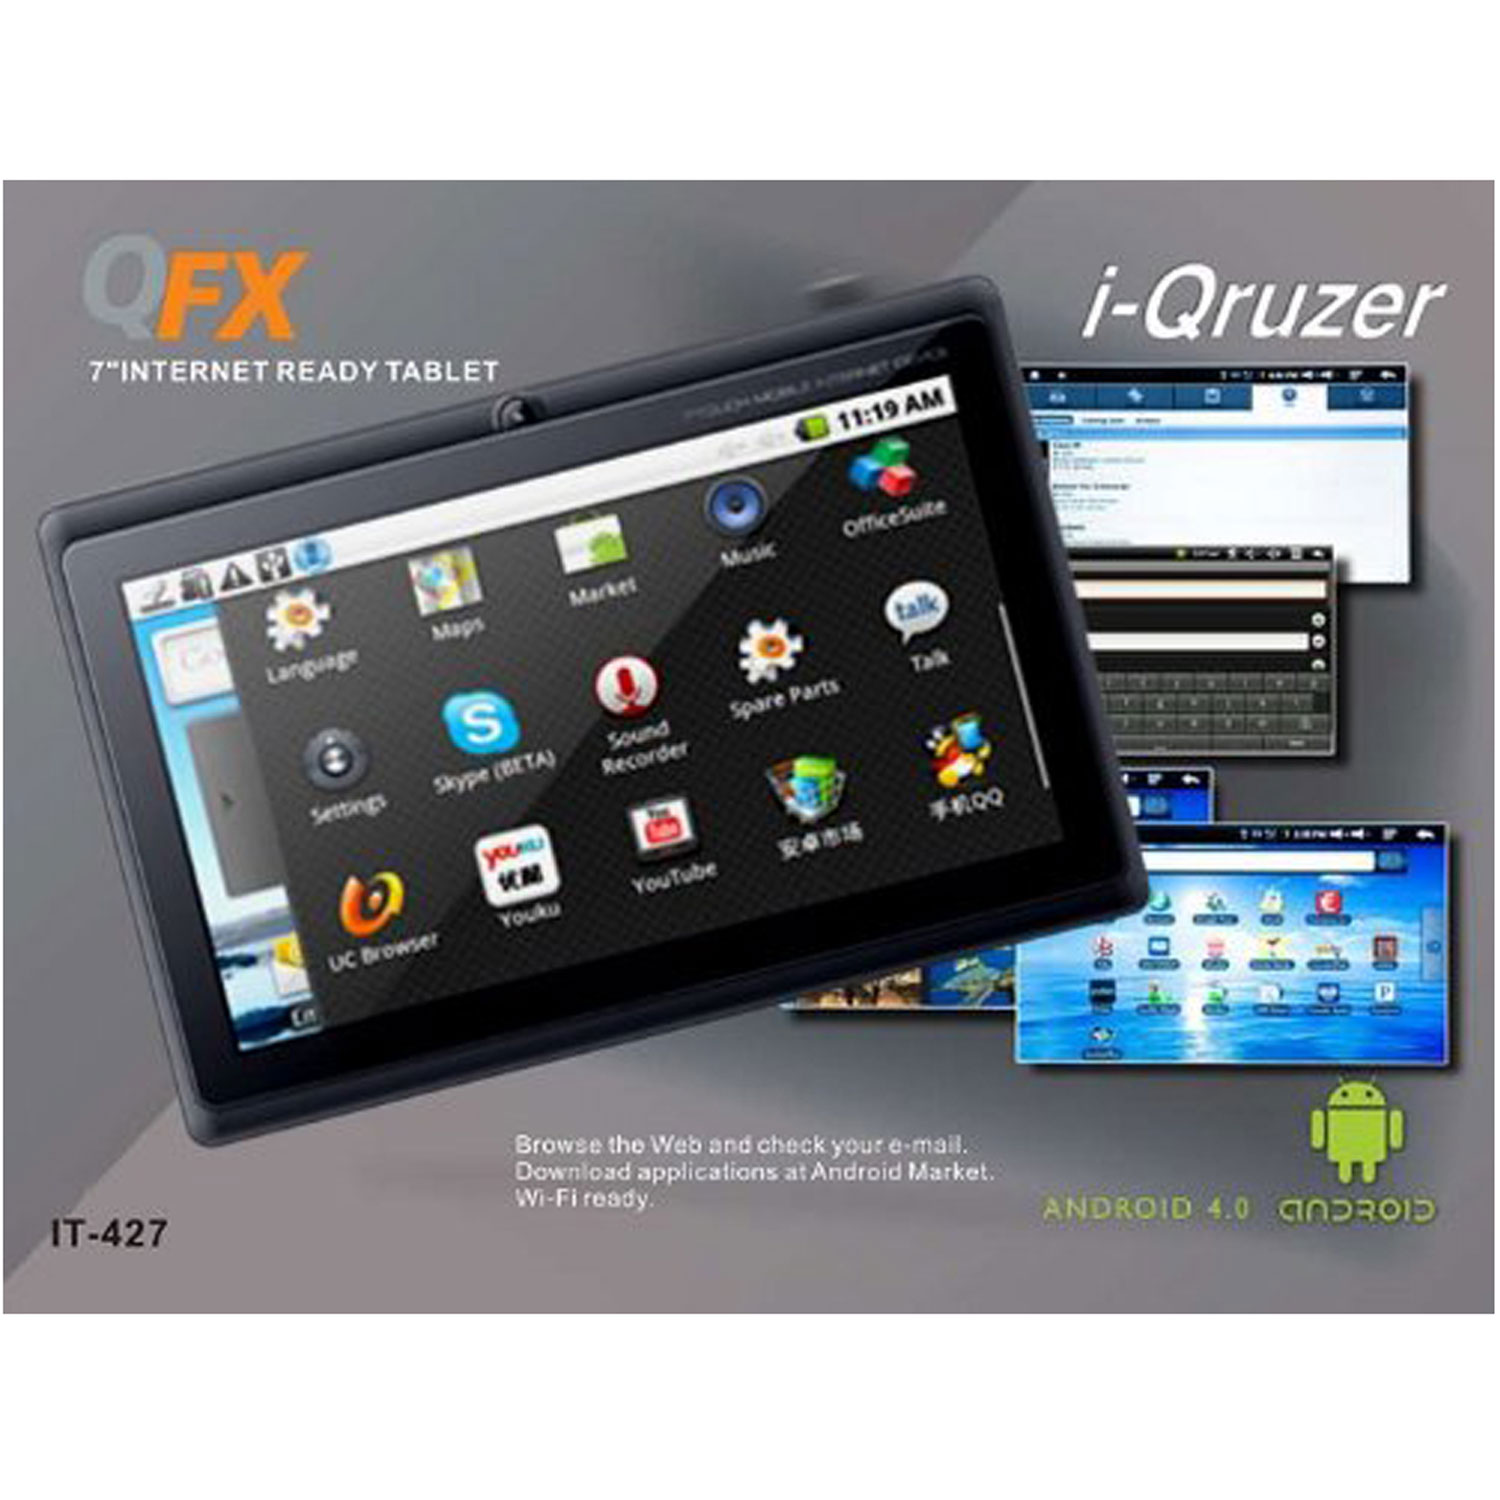 QFX Android 4.0 Tablet (IT-427) - Refurbished